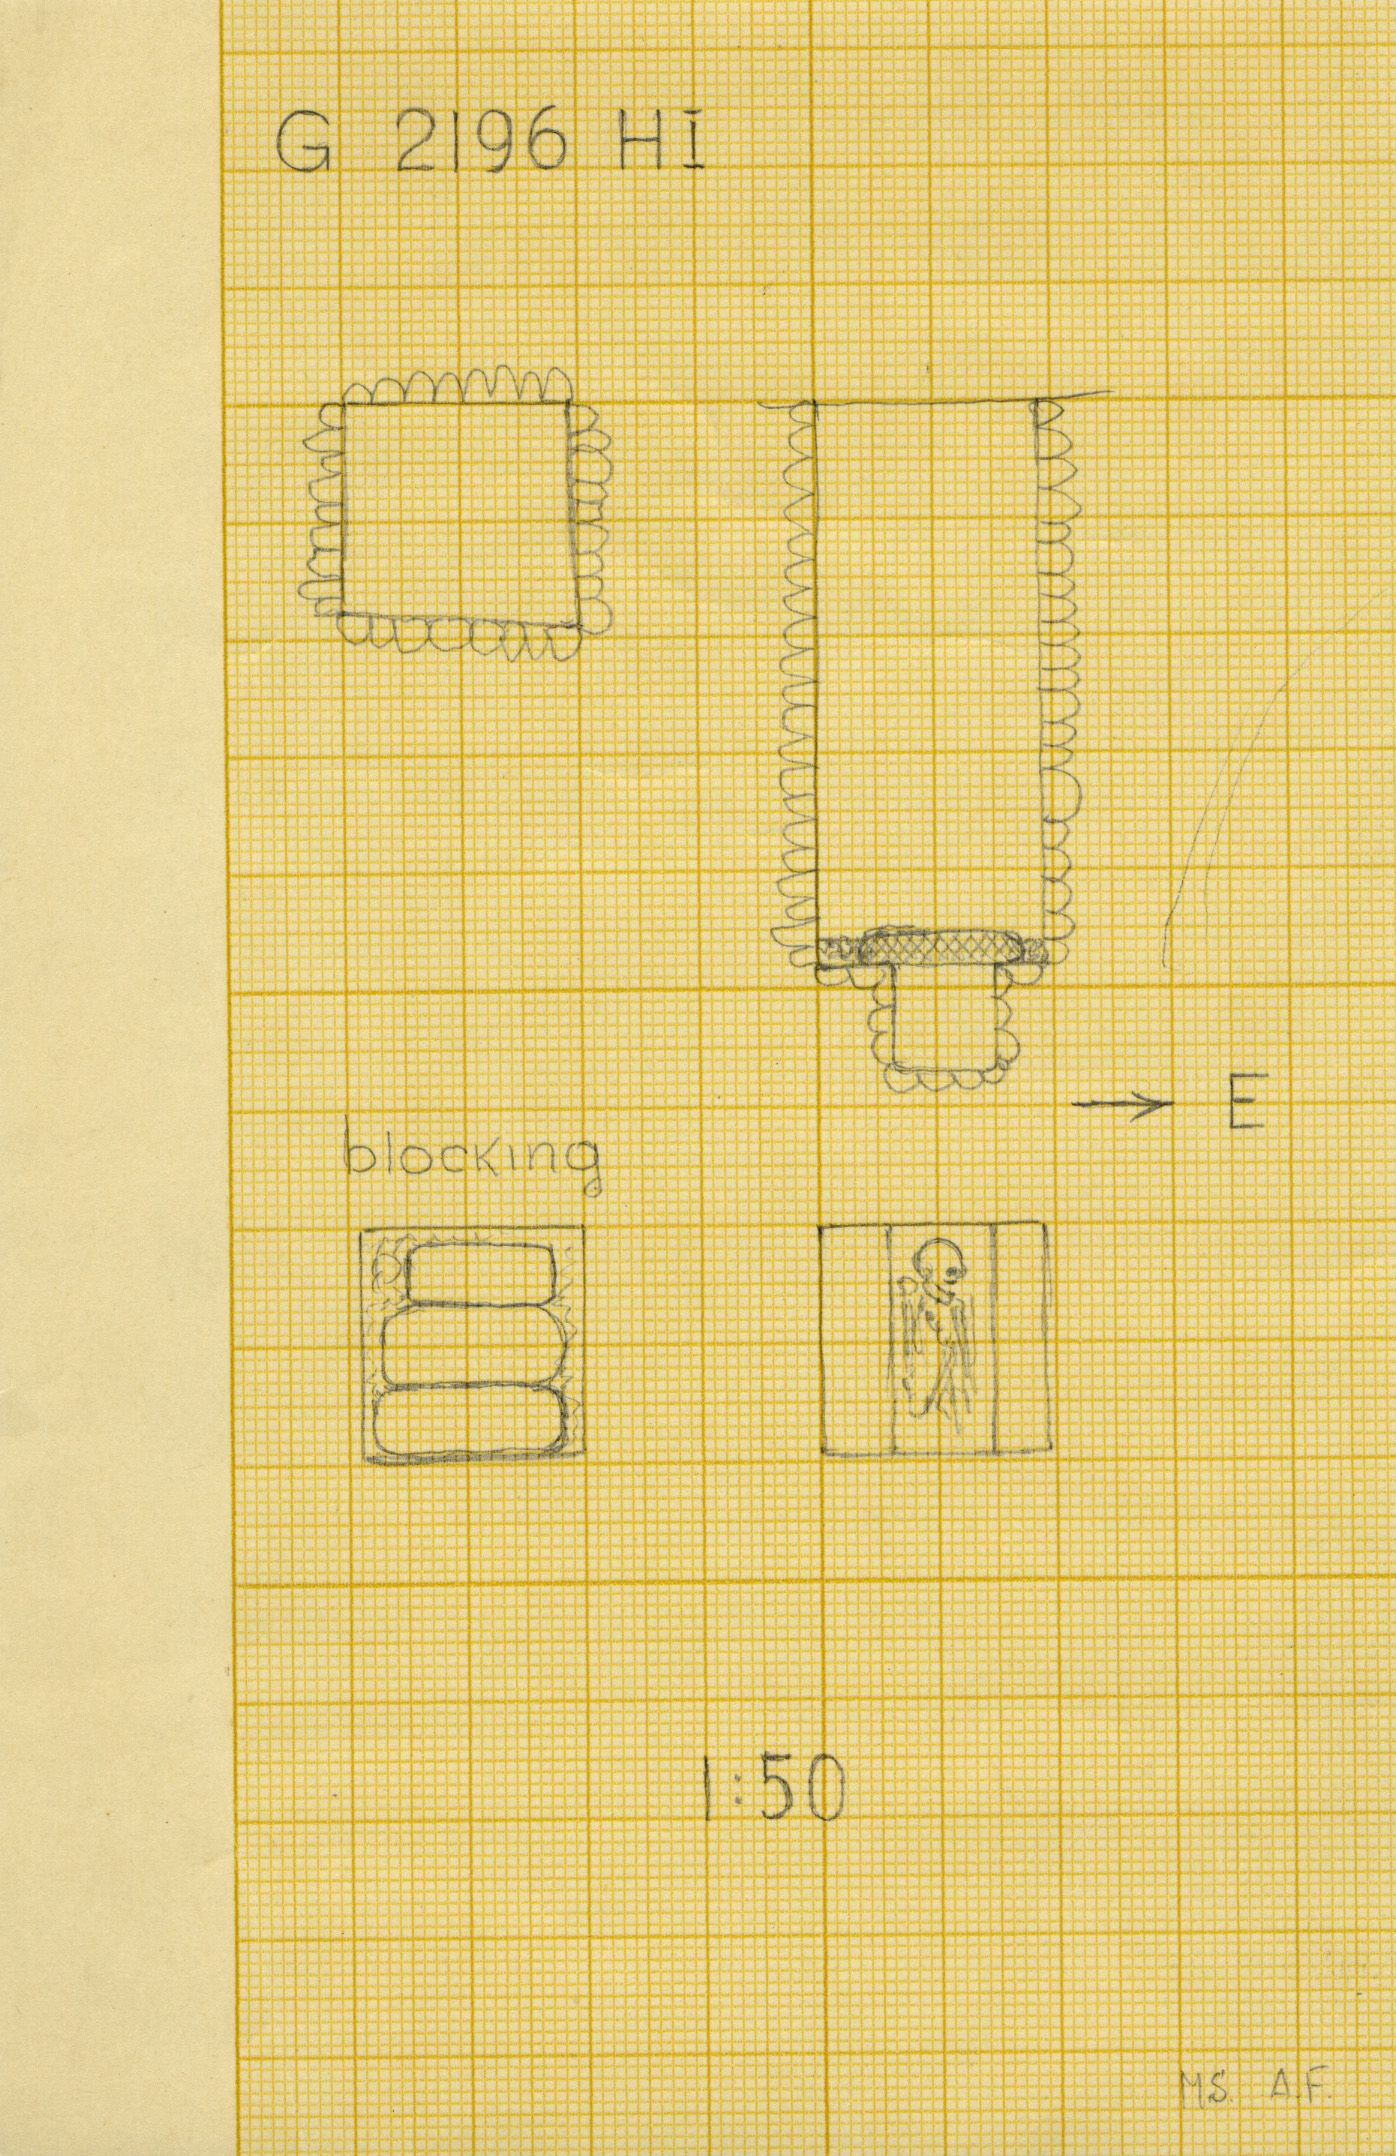 Maps and plans: G 2196, Shaft H (I)